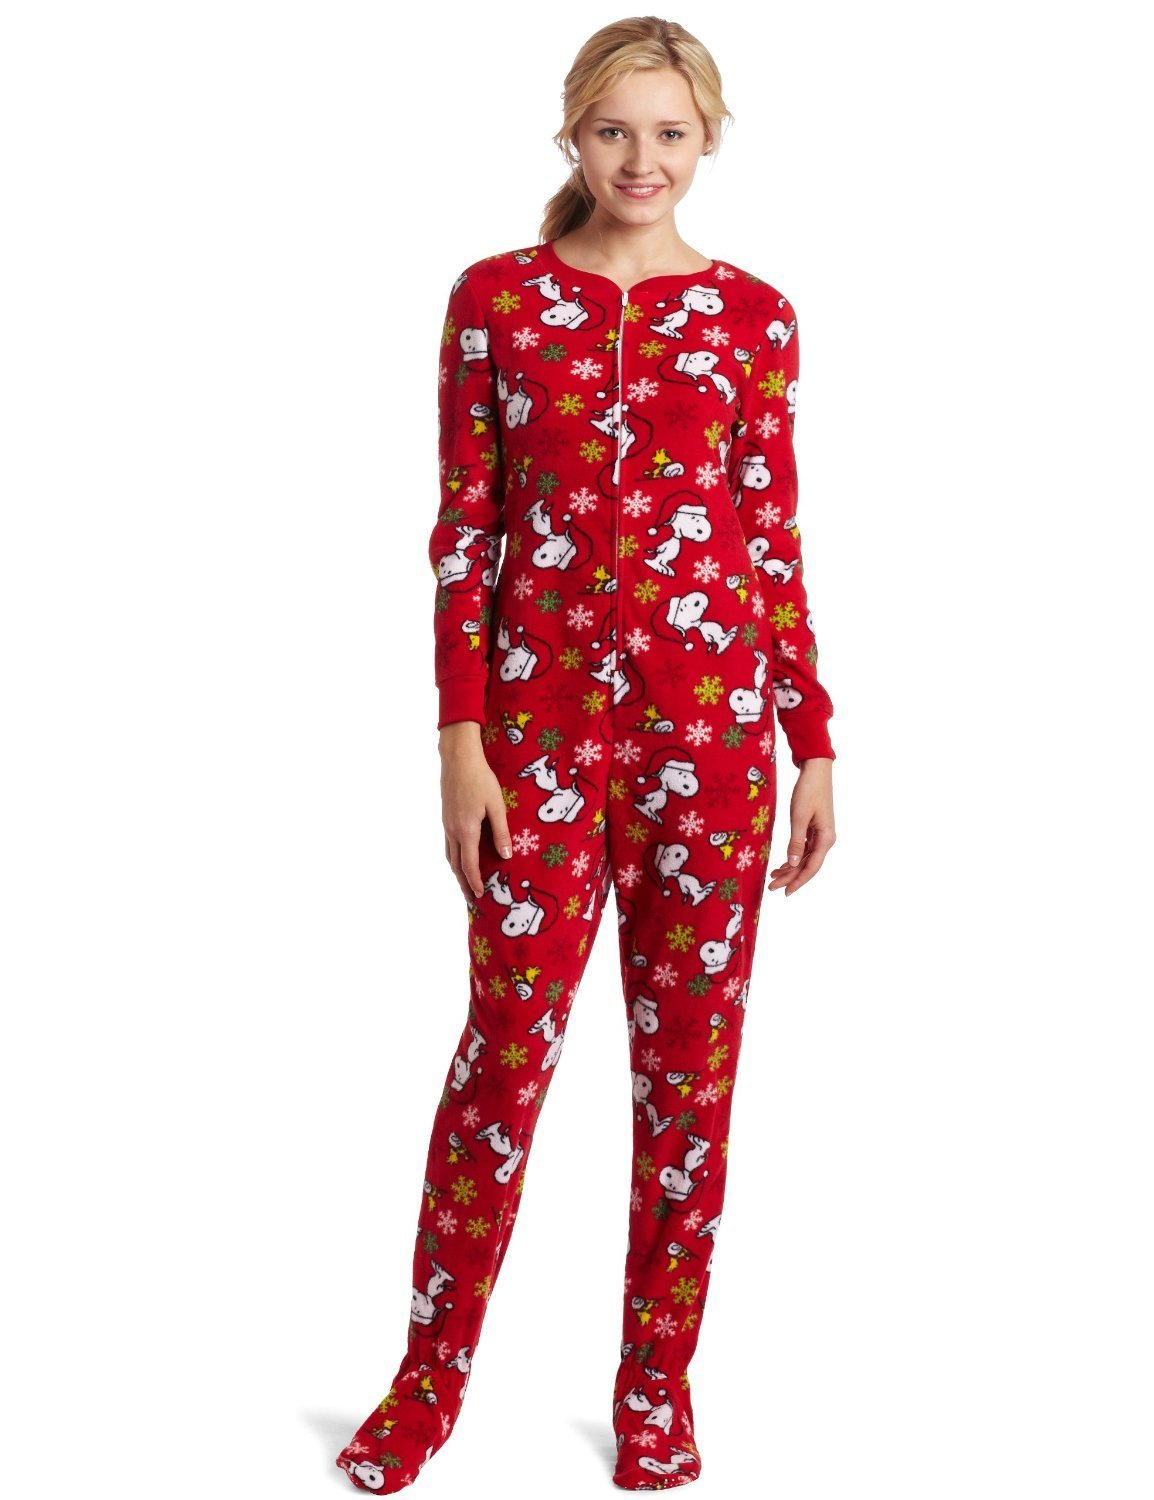 Little Wonders Infant Girls' 2-Pack Footed Pajamas - Butterflies & Dots. Sold by Sears. $ $ Big Feet Pajamas Navy Blue Hooded Plush Adult Mens Footed Pajamas Sleeper w/ Drop Seat. Sold by Big Feet Pajama Co. $ $